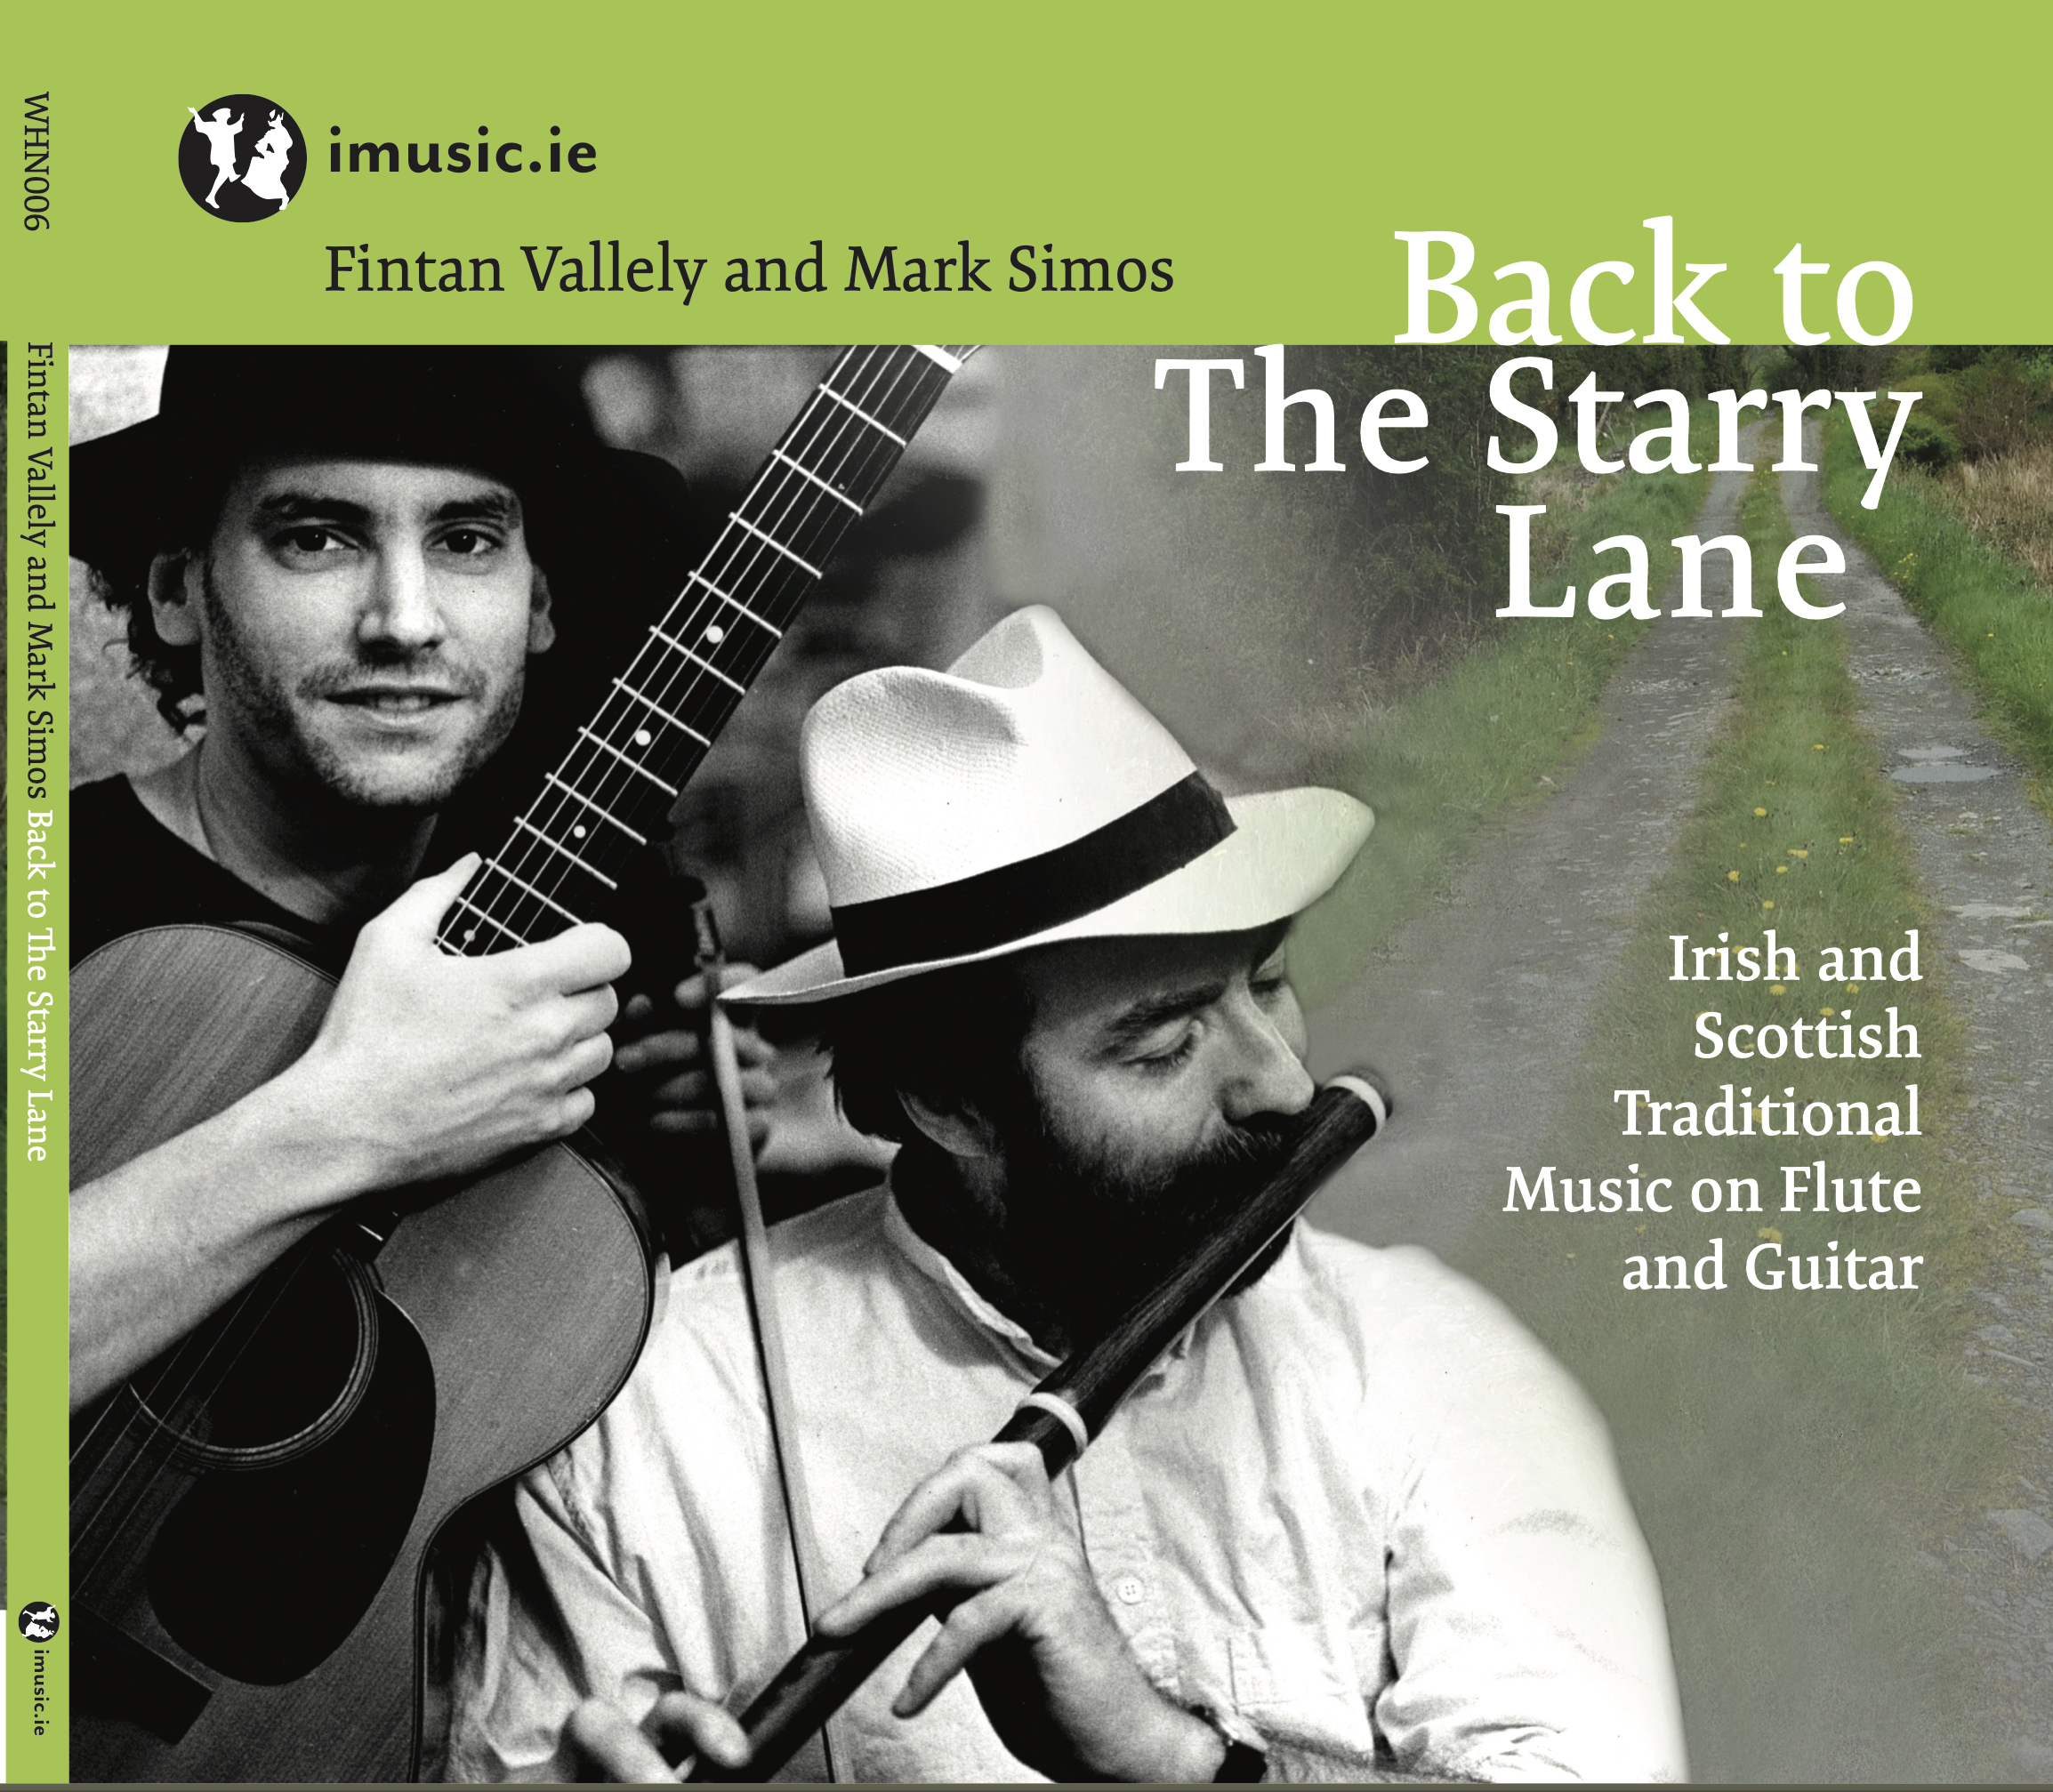 Bsl back to the starry lane cover 1010